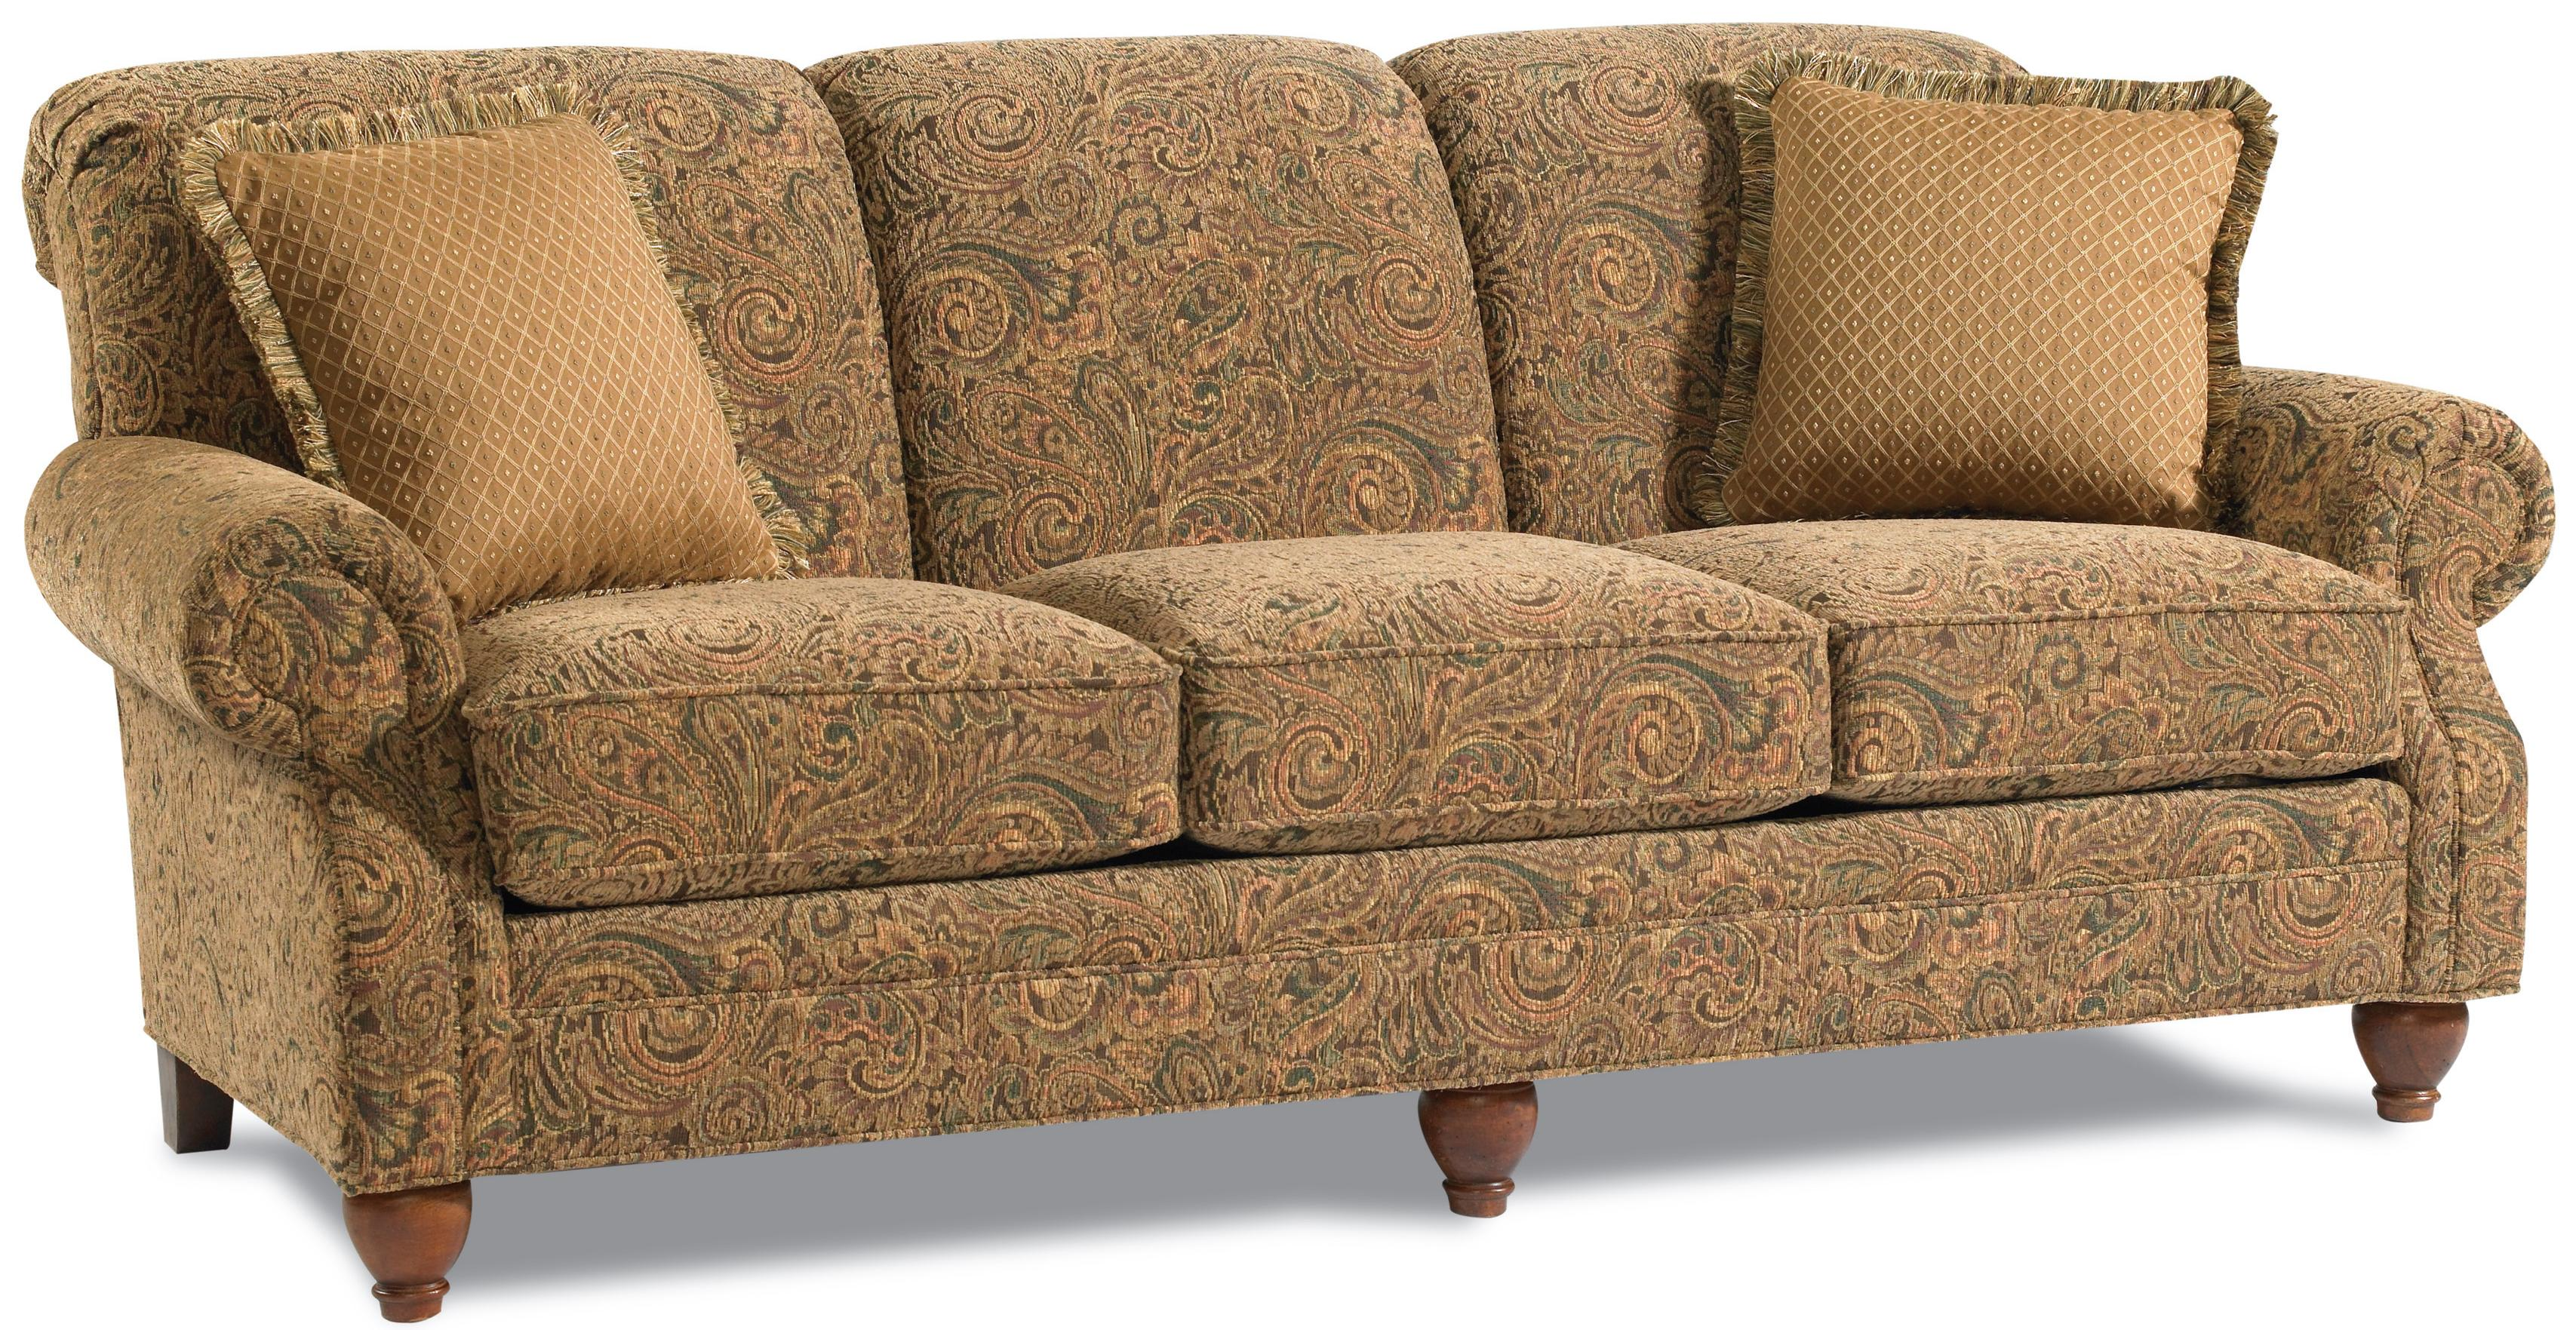 Clayton Marcus Clementine 3274 Traditional Queen Sleeper Sofa With Rolled  Arms   AHFA   Sofa Sleeper Dealer Locator